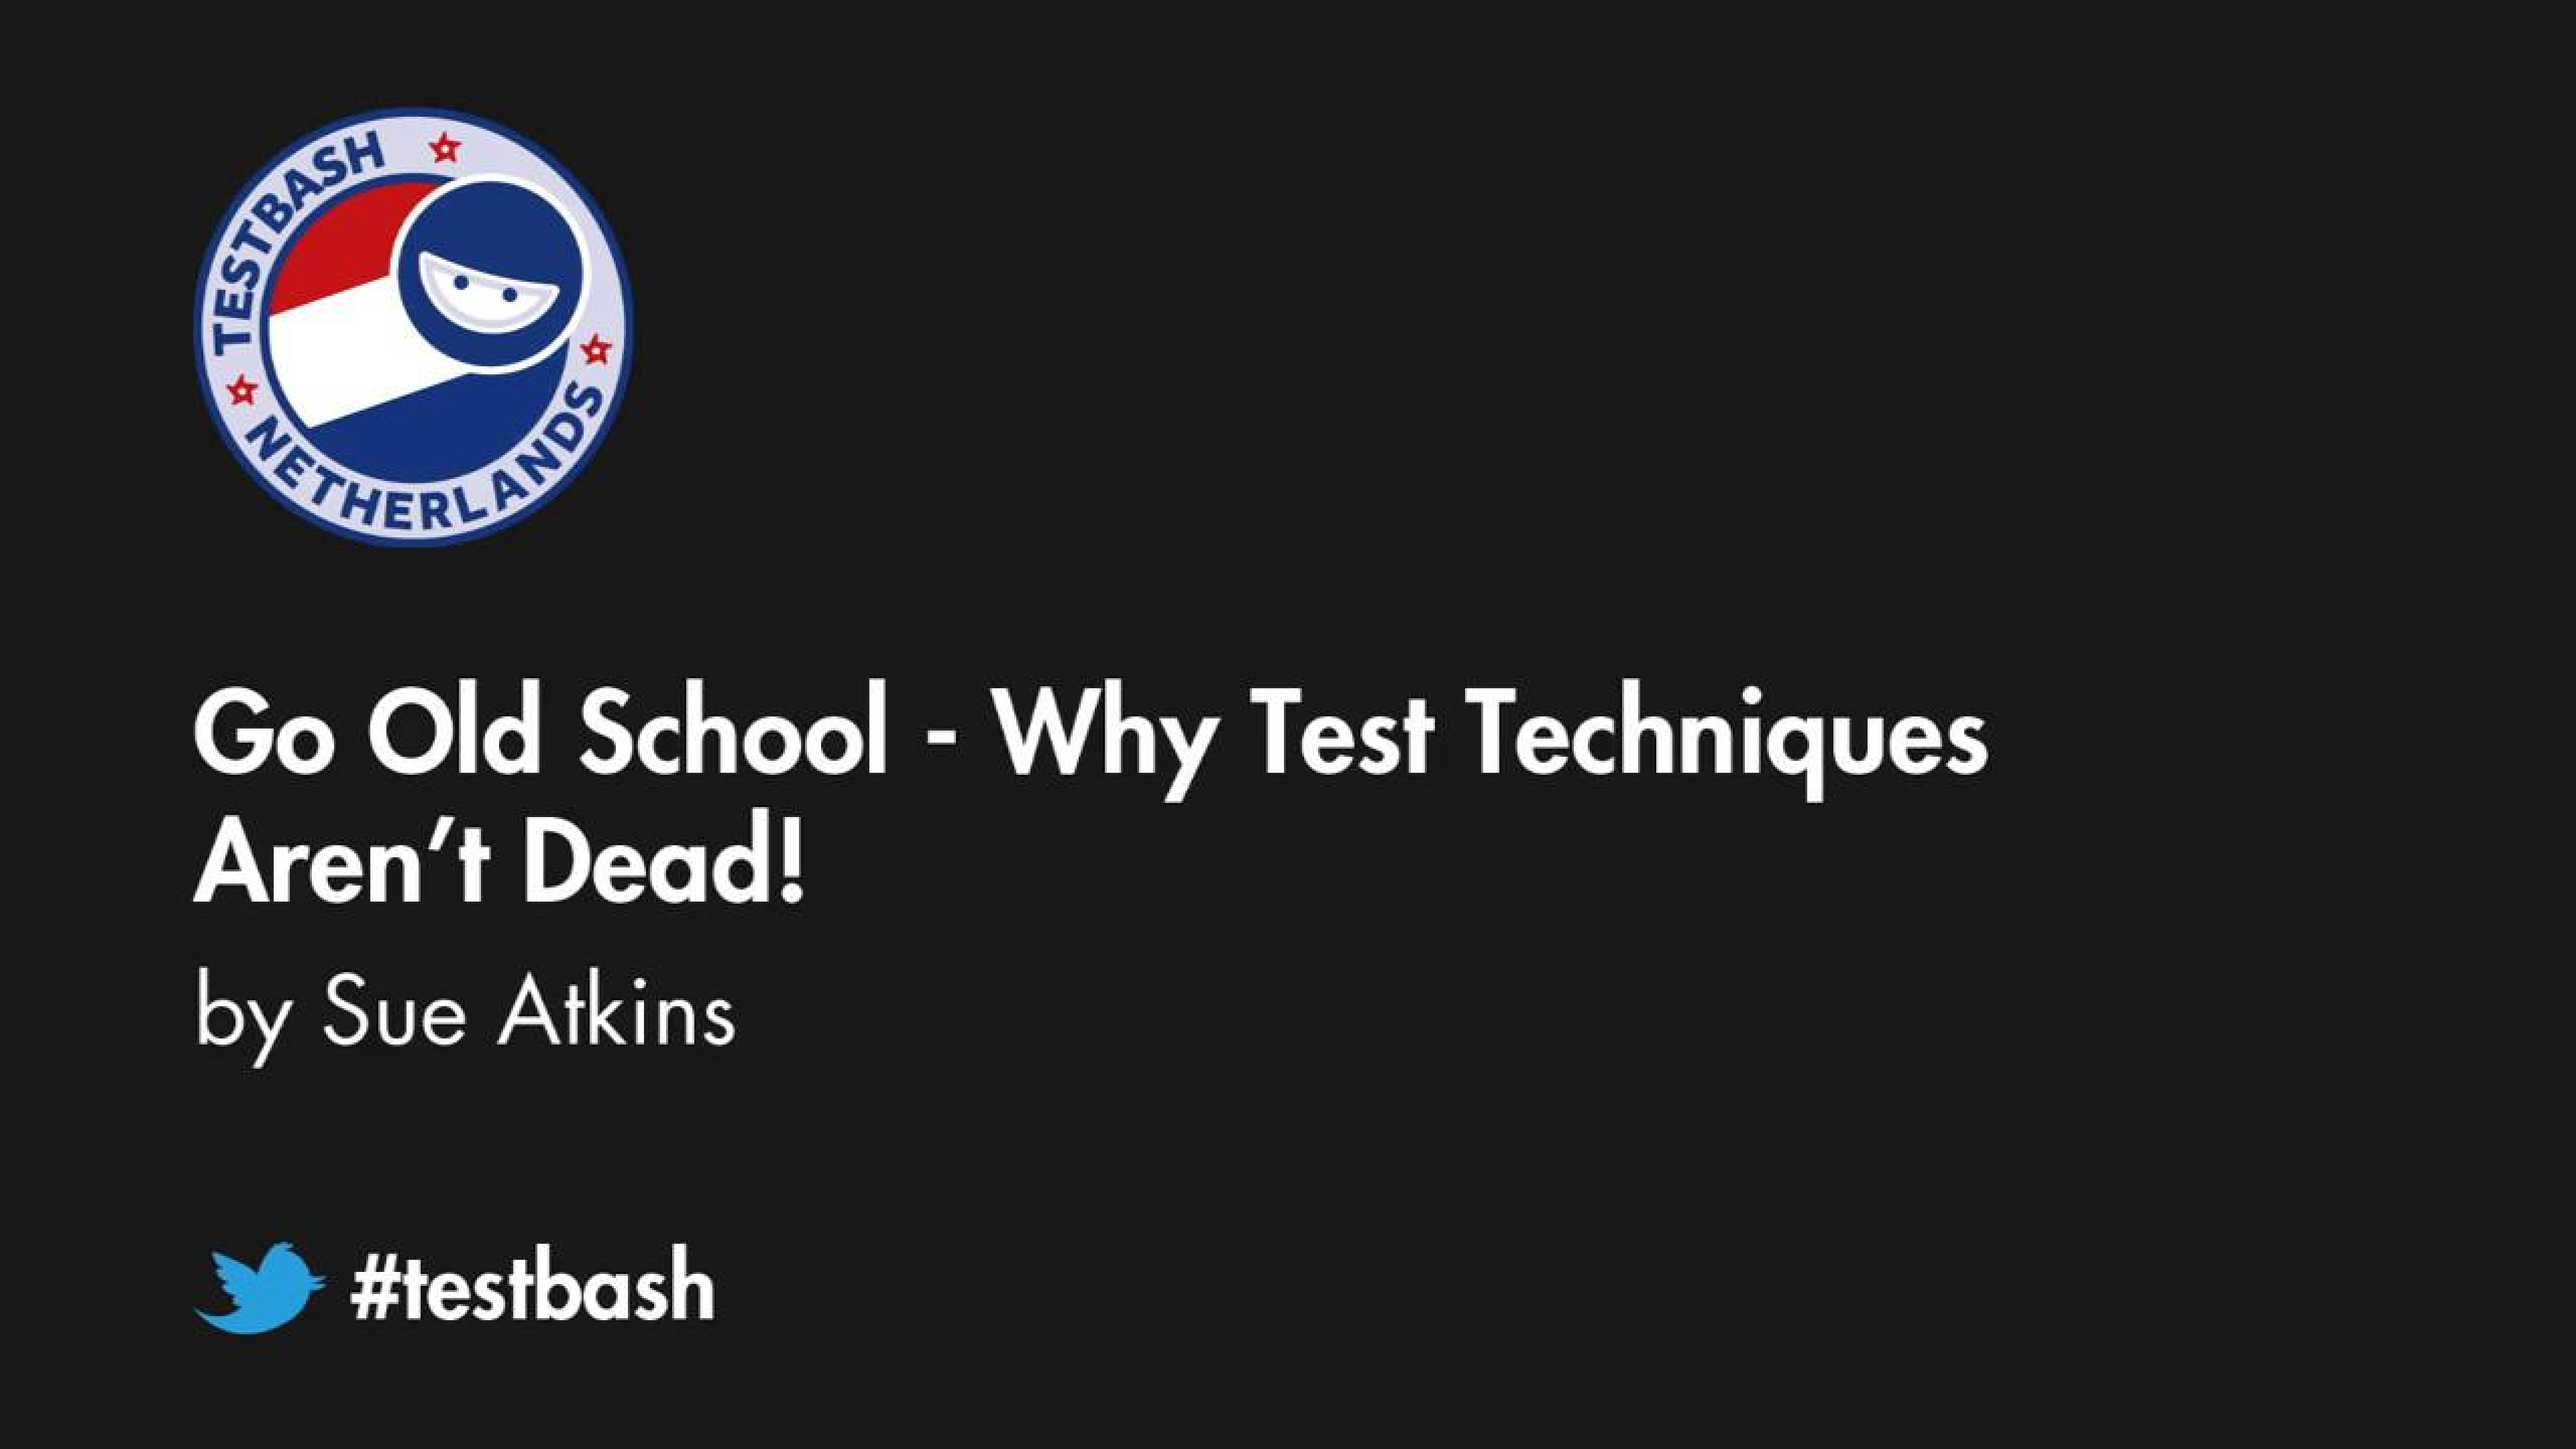 Go Old School: Why Test Techniques Aren't Dead! - Sue Atkins